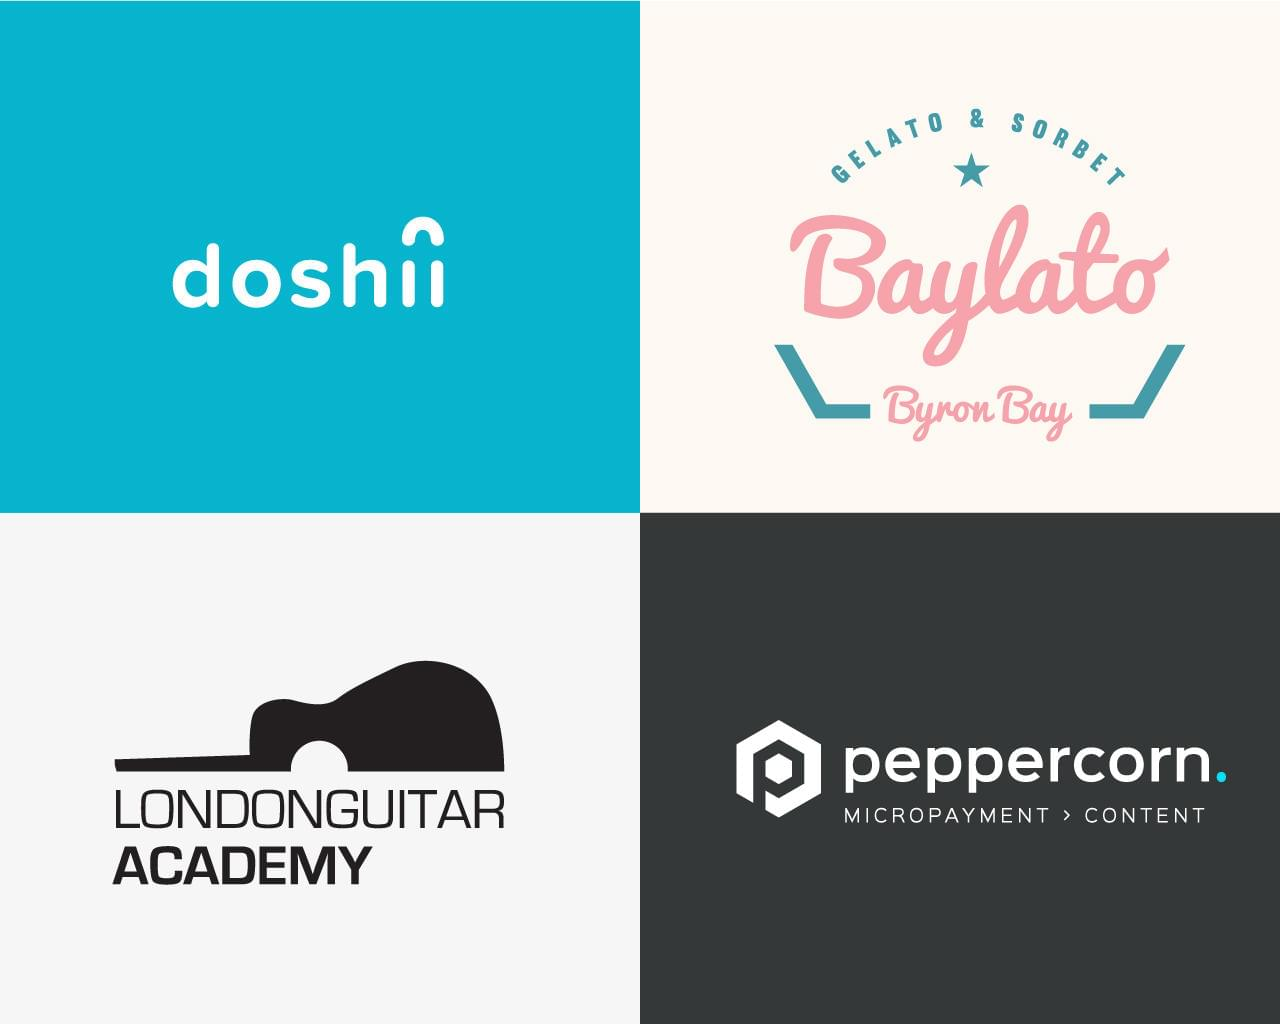 Simple Creative Logos & Branding by ShaneFreer - 111206